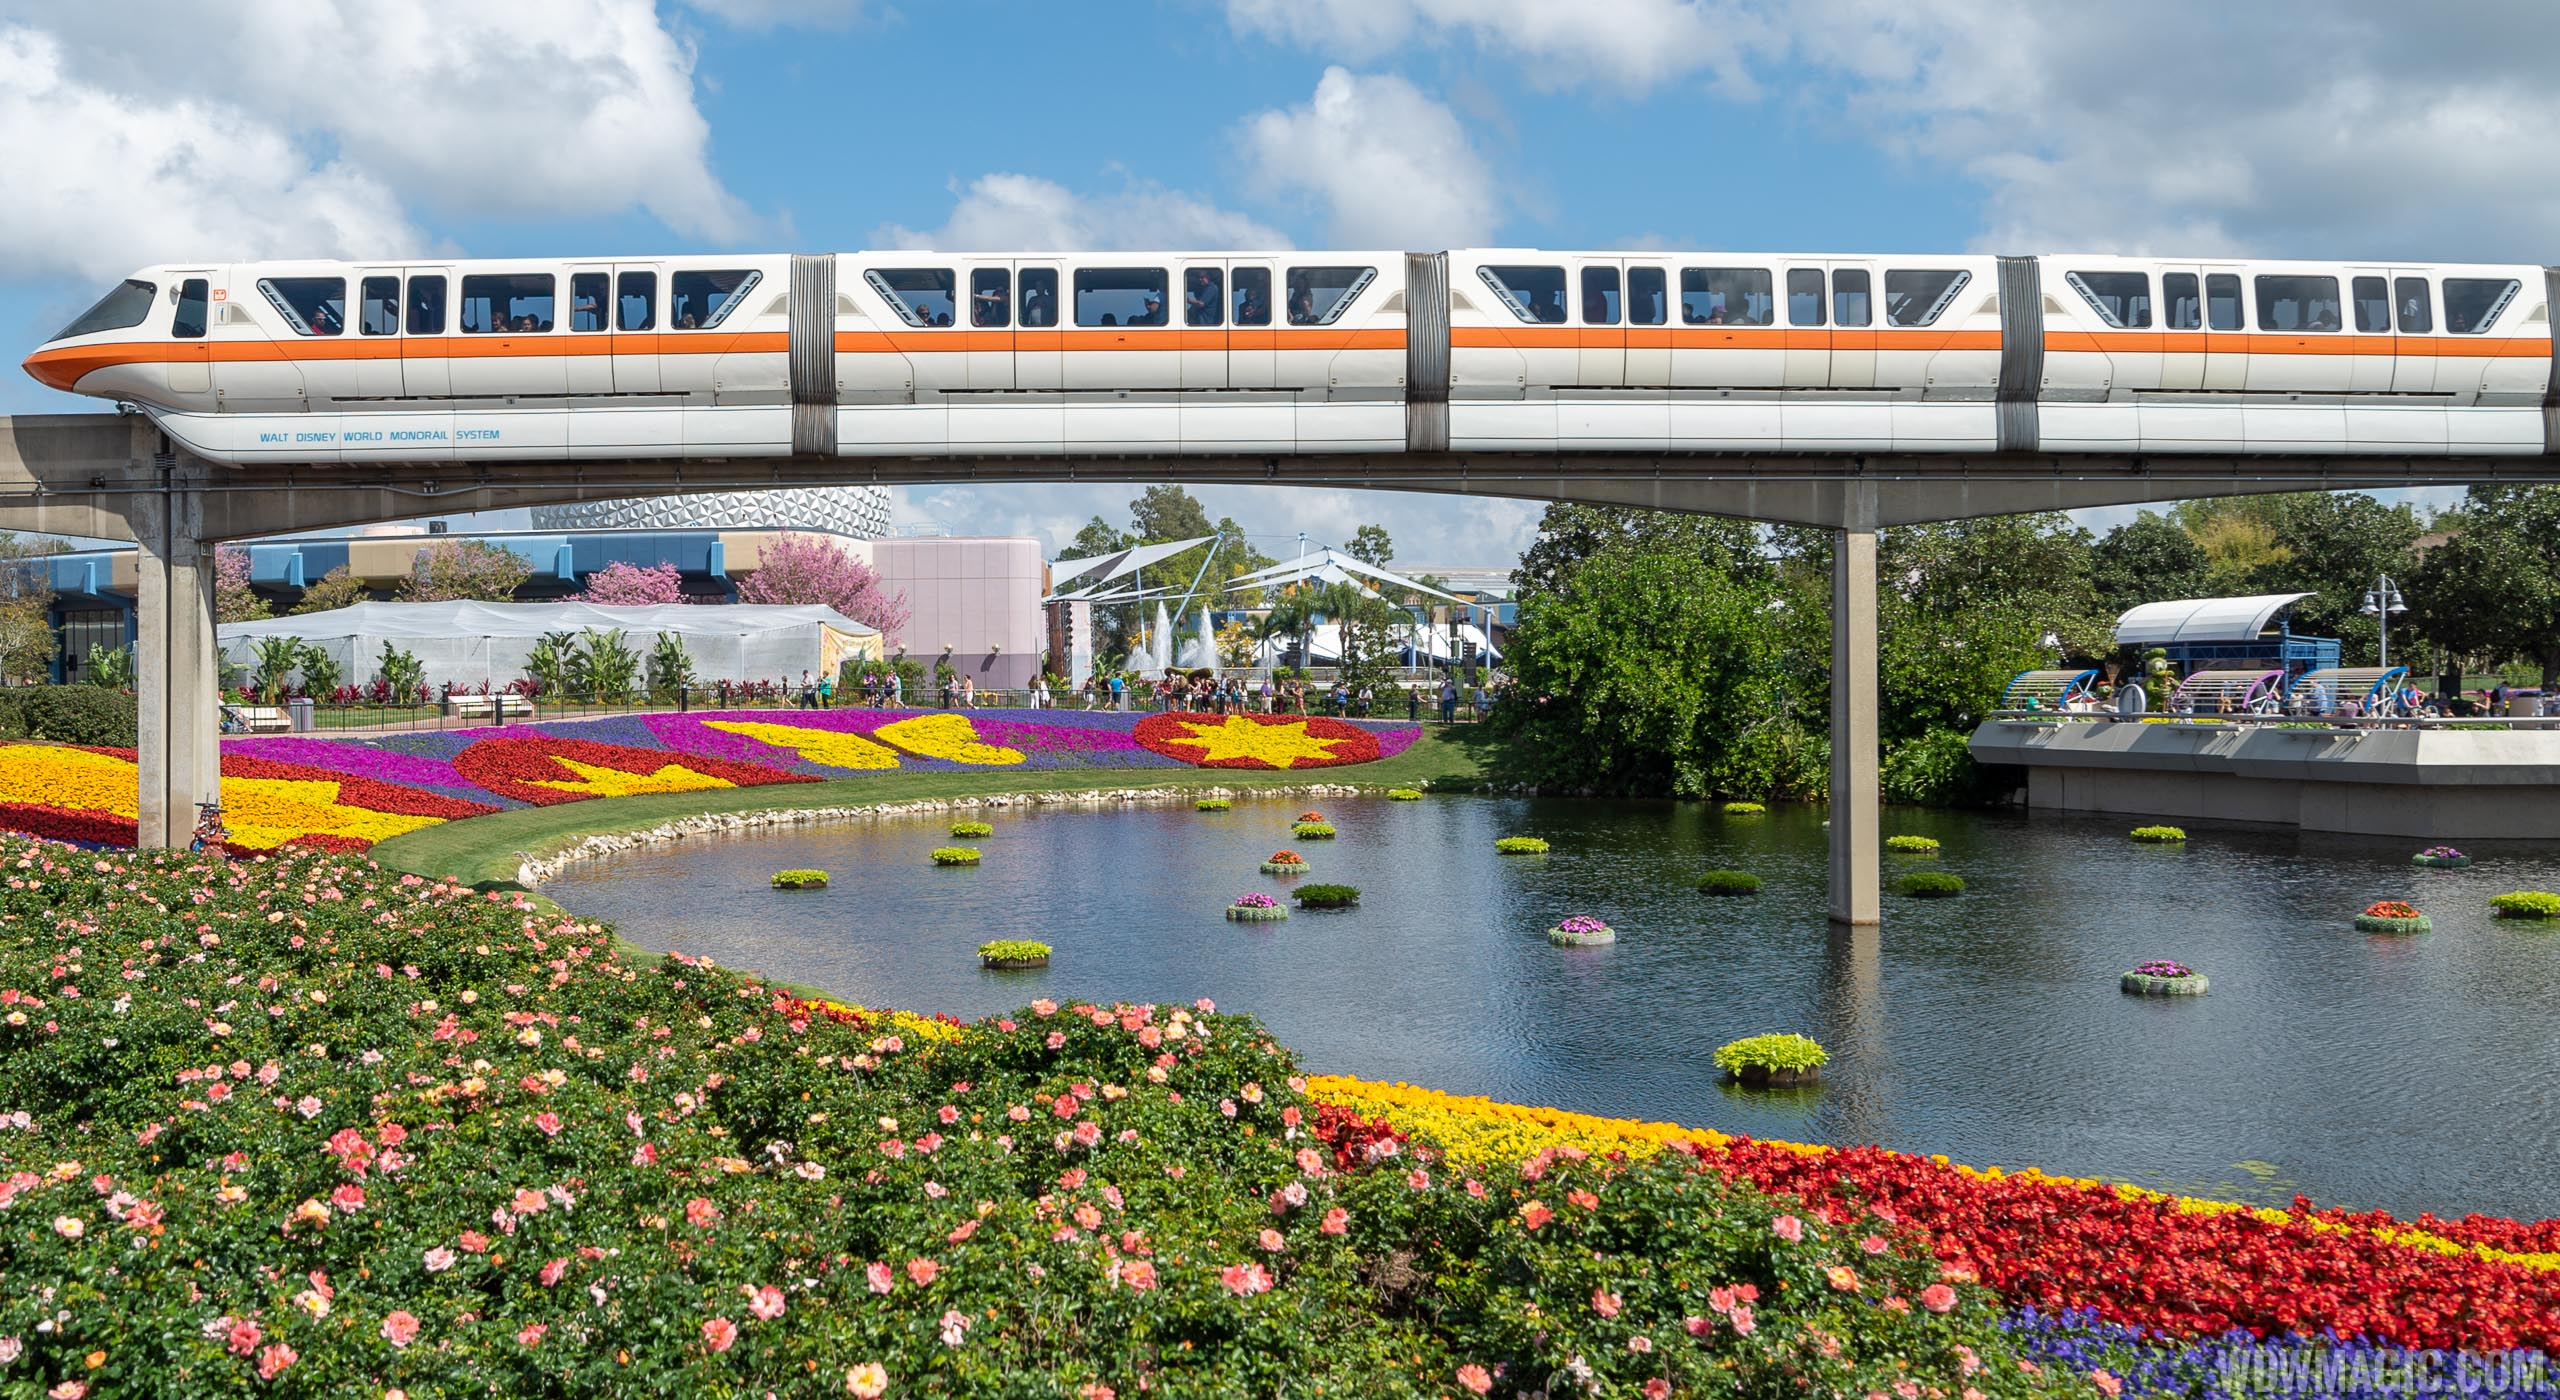 All the closures and relocations coming to Epcot's Future World